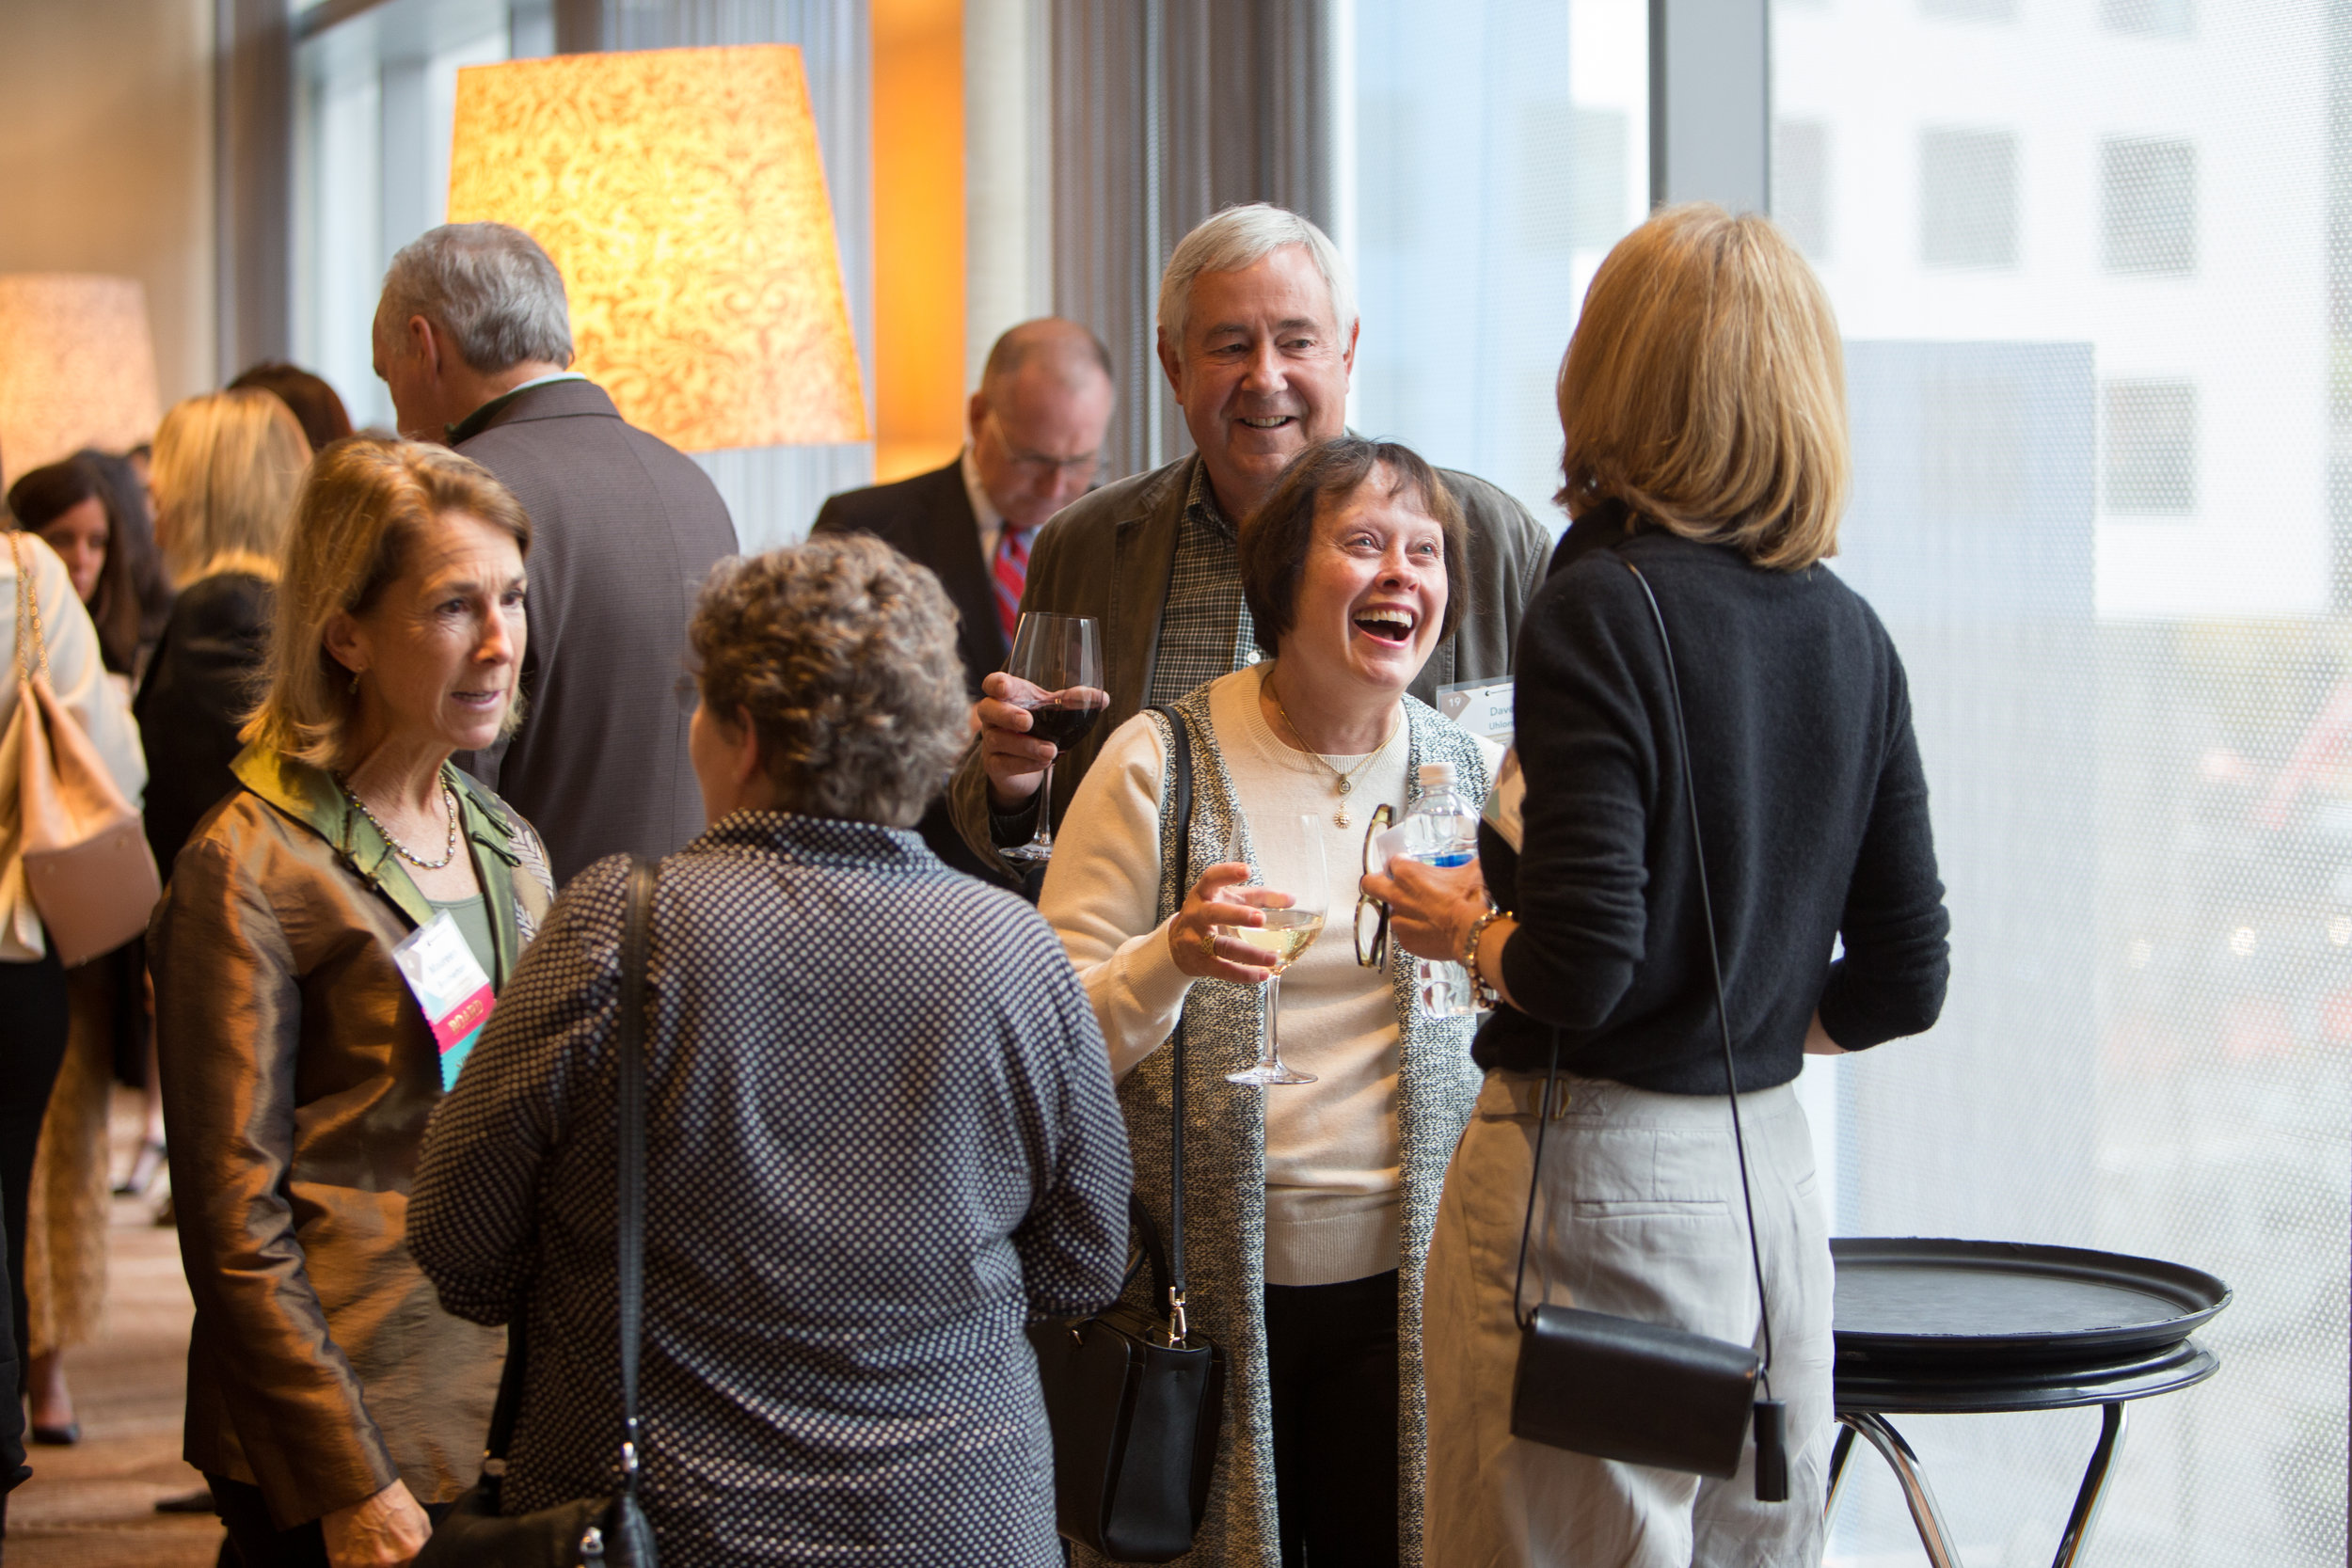 TIPS Co-Founder Maureen Brotherton (far left) enjoys a moment with guests